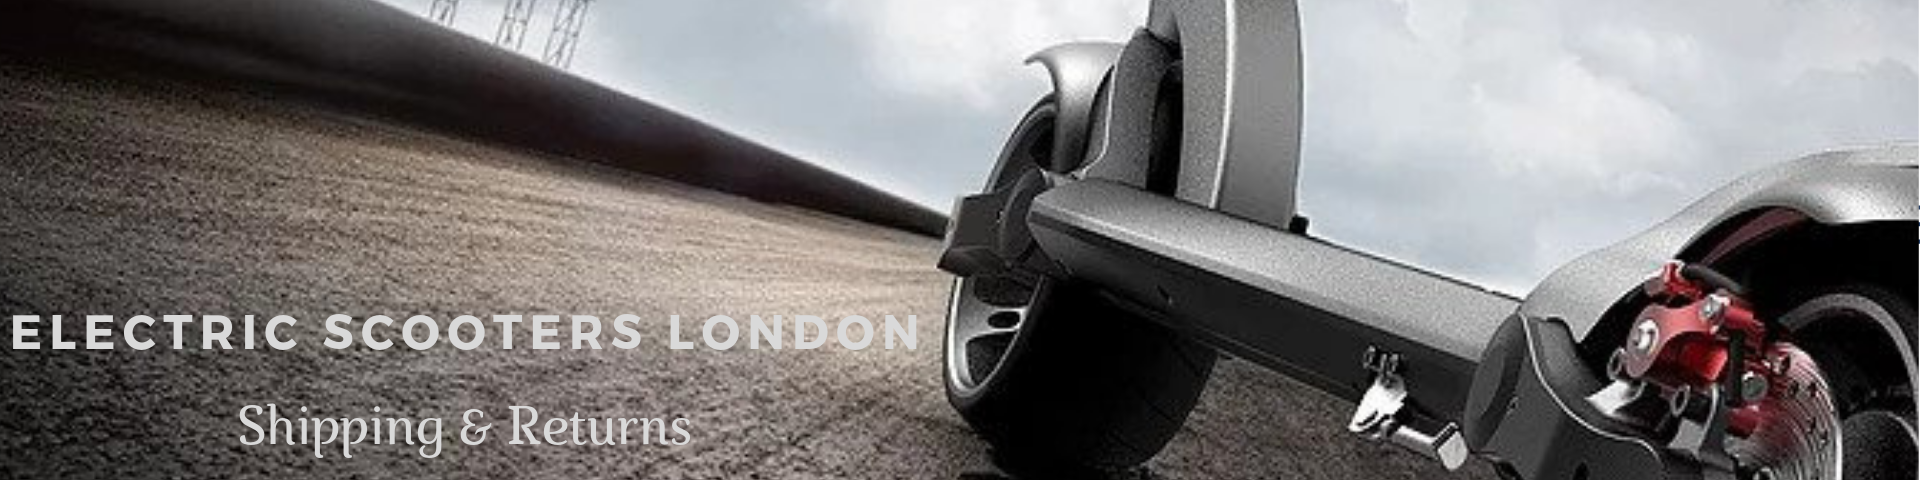 Electric Scooters London Shipping and Return Page Banner